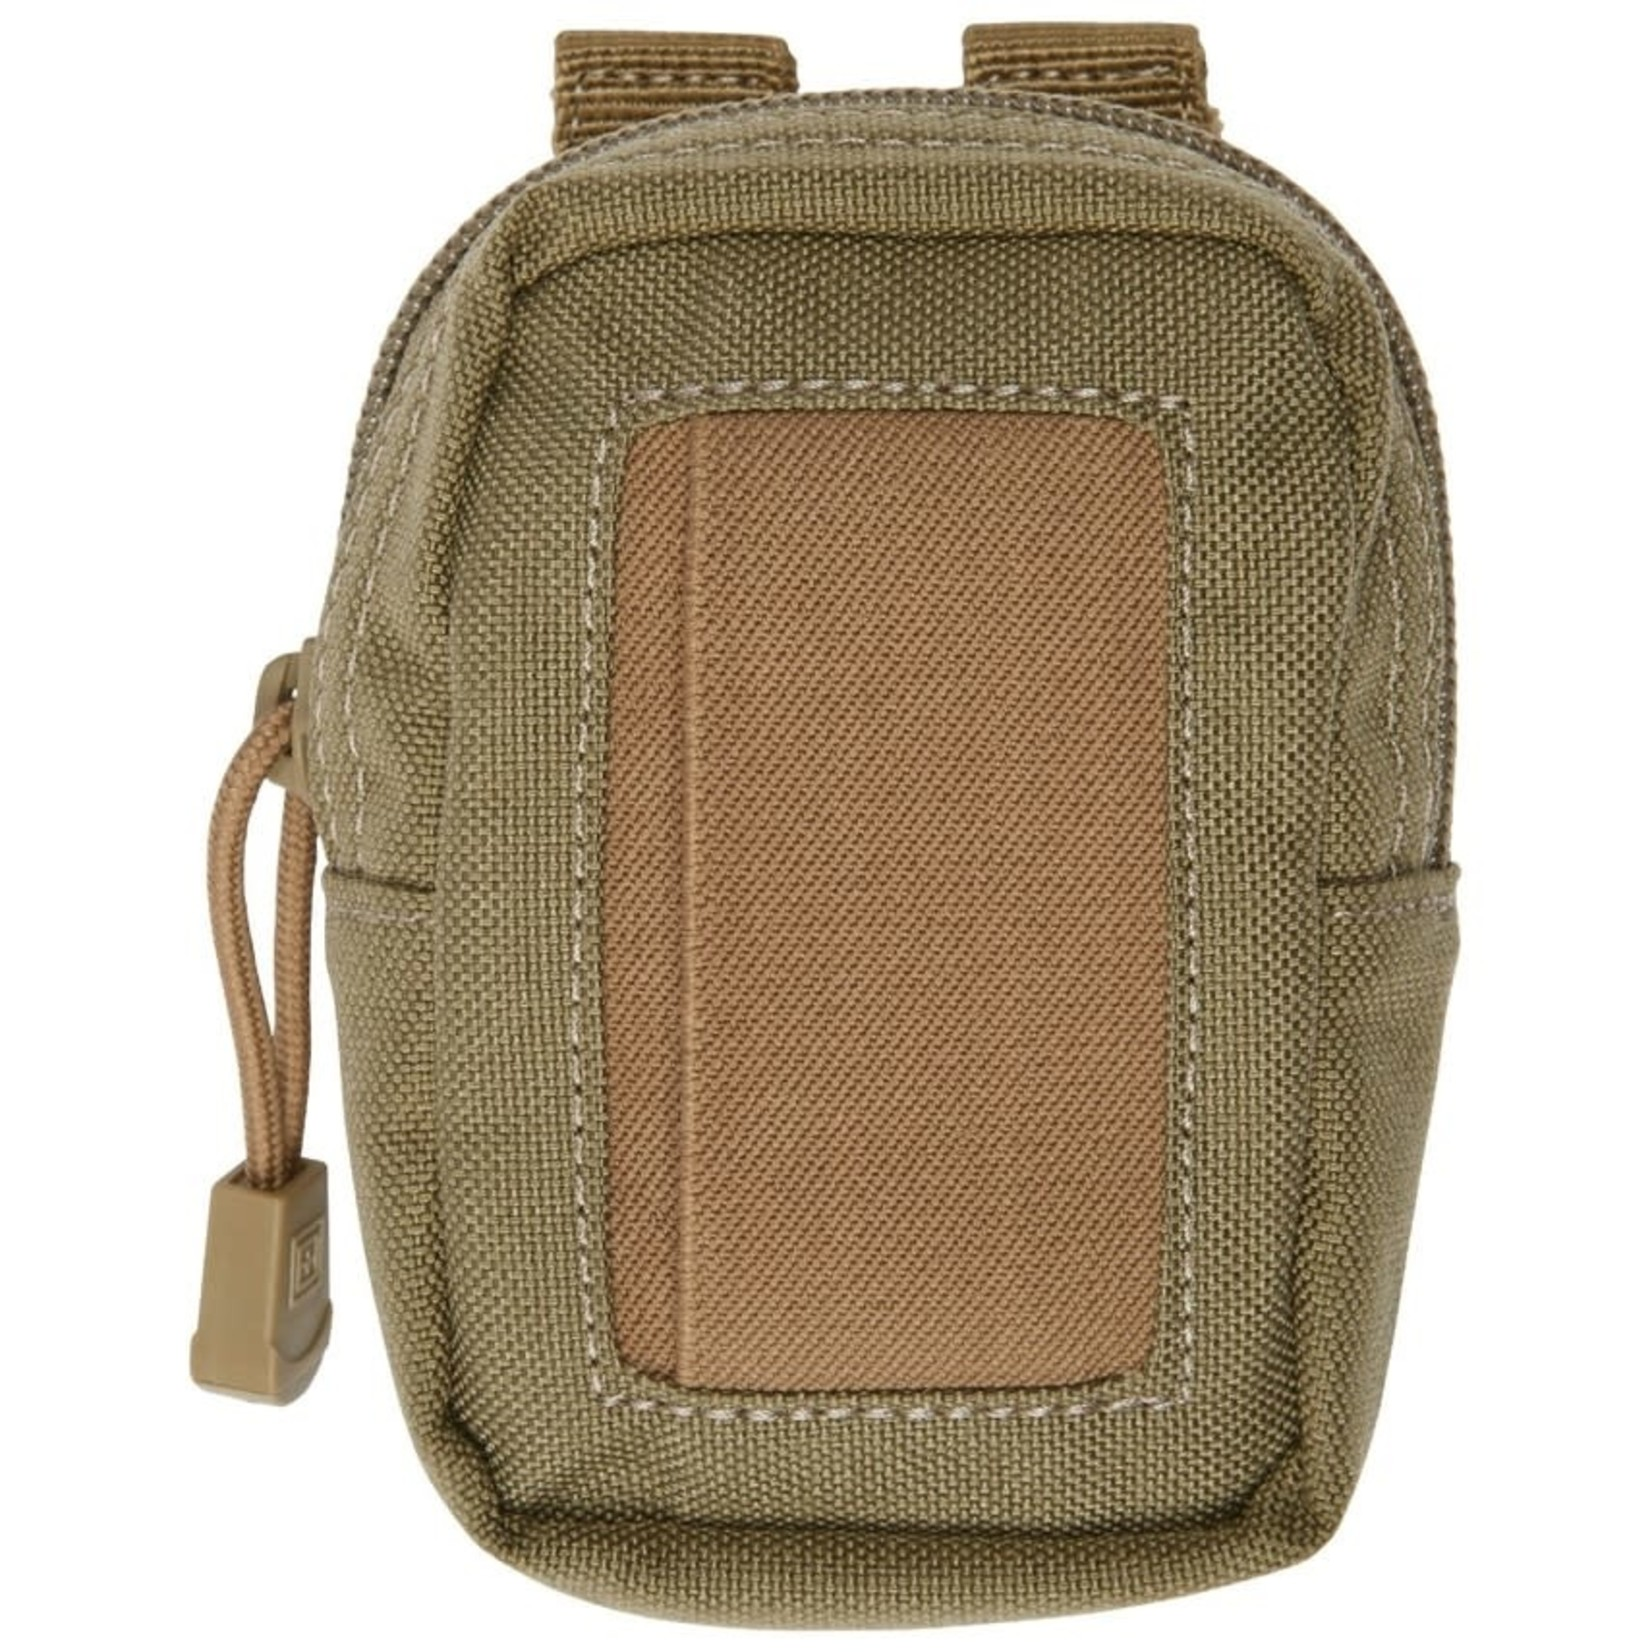 5.11 Tactical 5.11 Disposable Glove Pouch (latex)